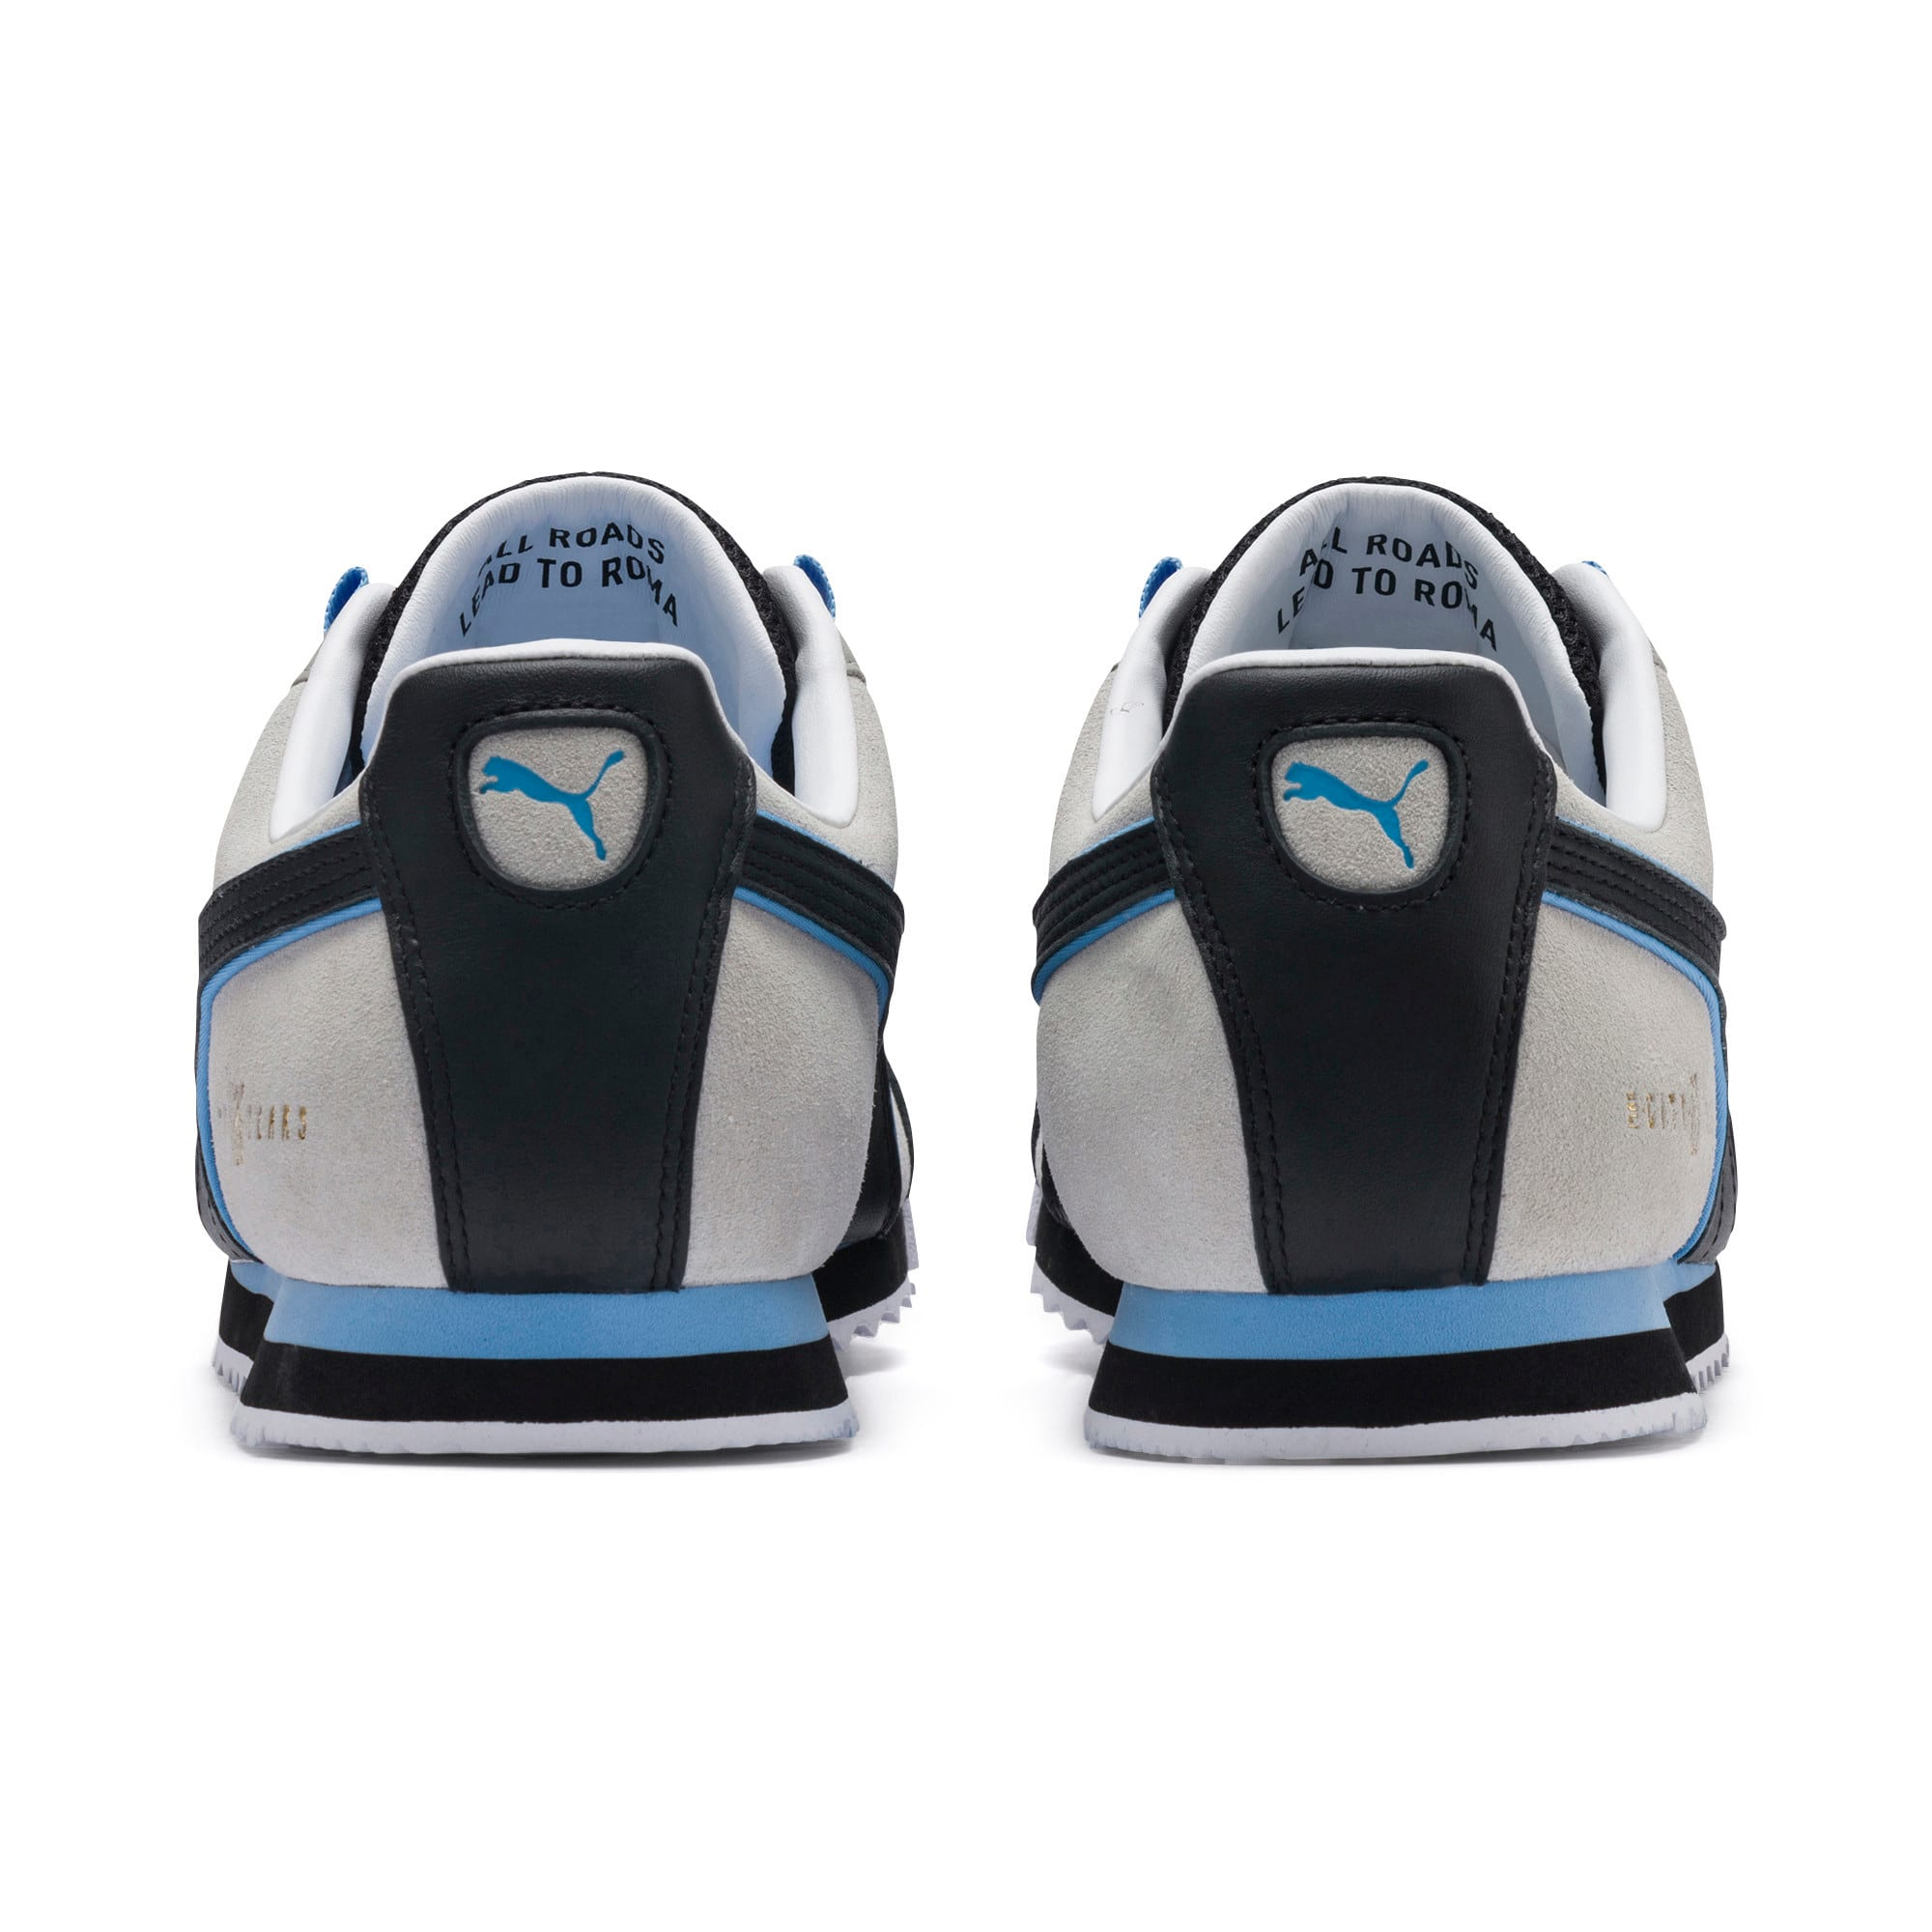 Thumbnail 3 of Roma x Manchester City Trainers, Gray Violet-Team Light Blue, medium